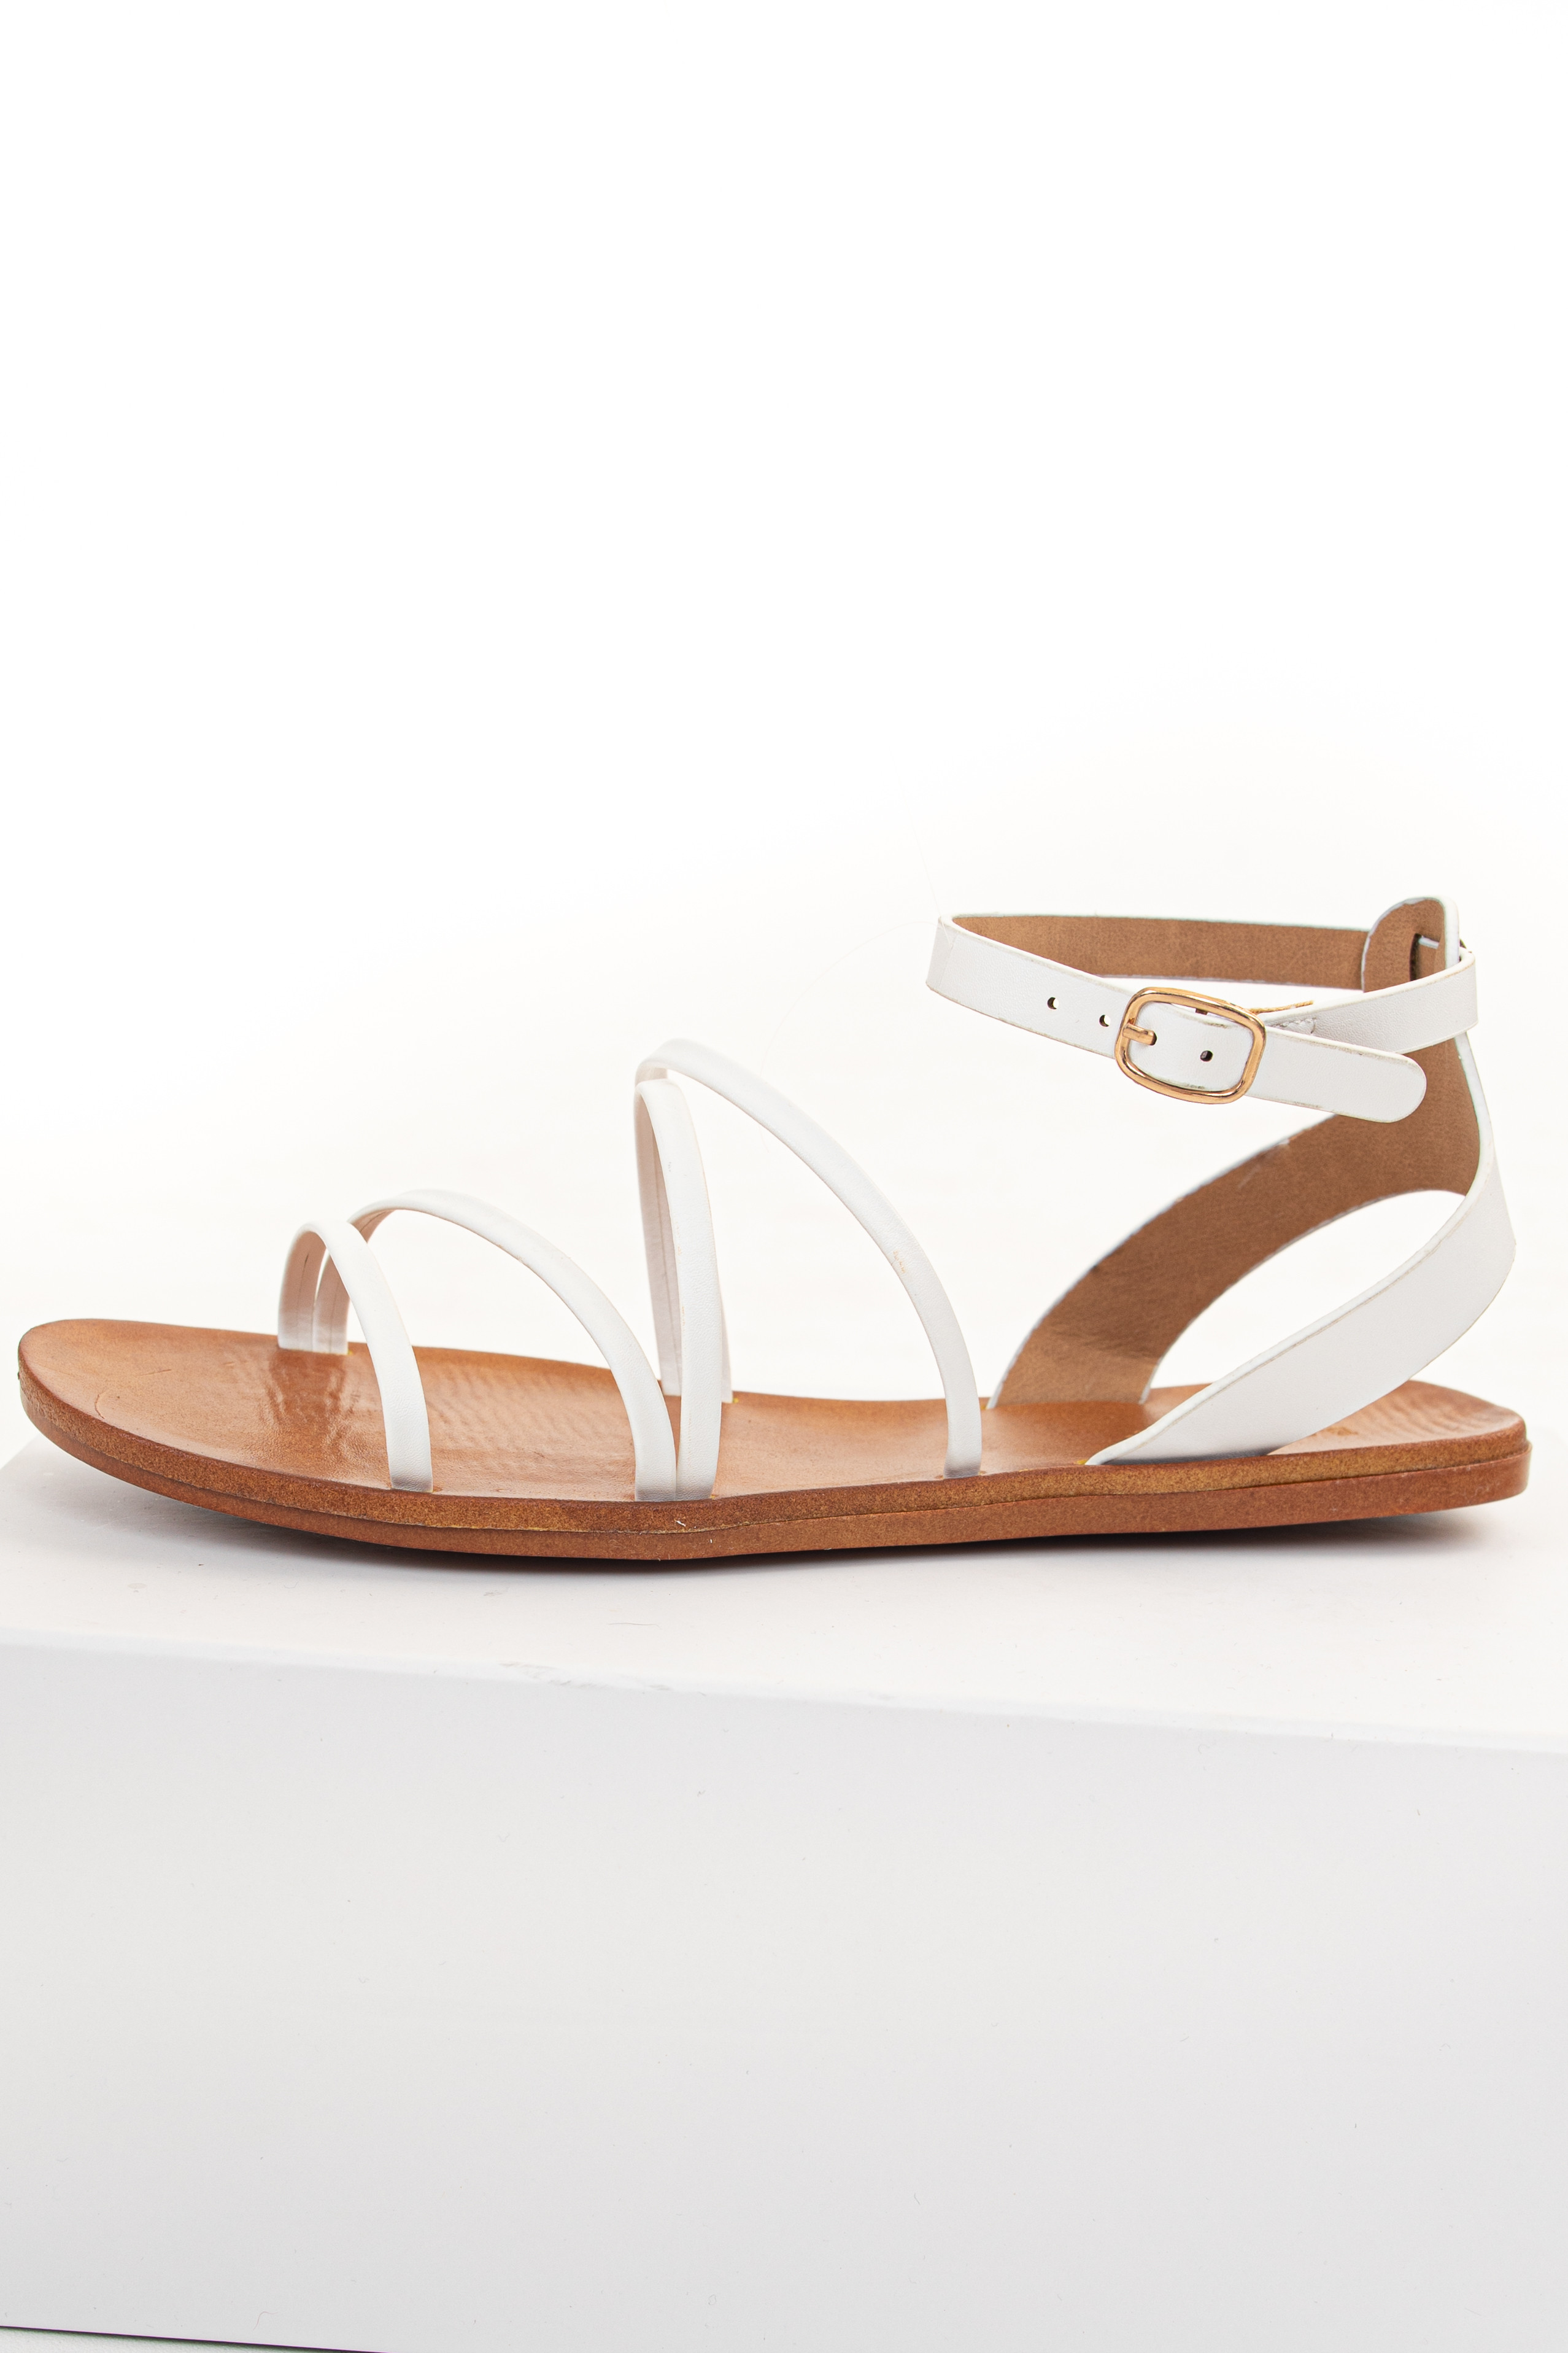 White Faux Leather Strappy Sandal with Buckle Closure